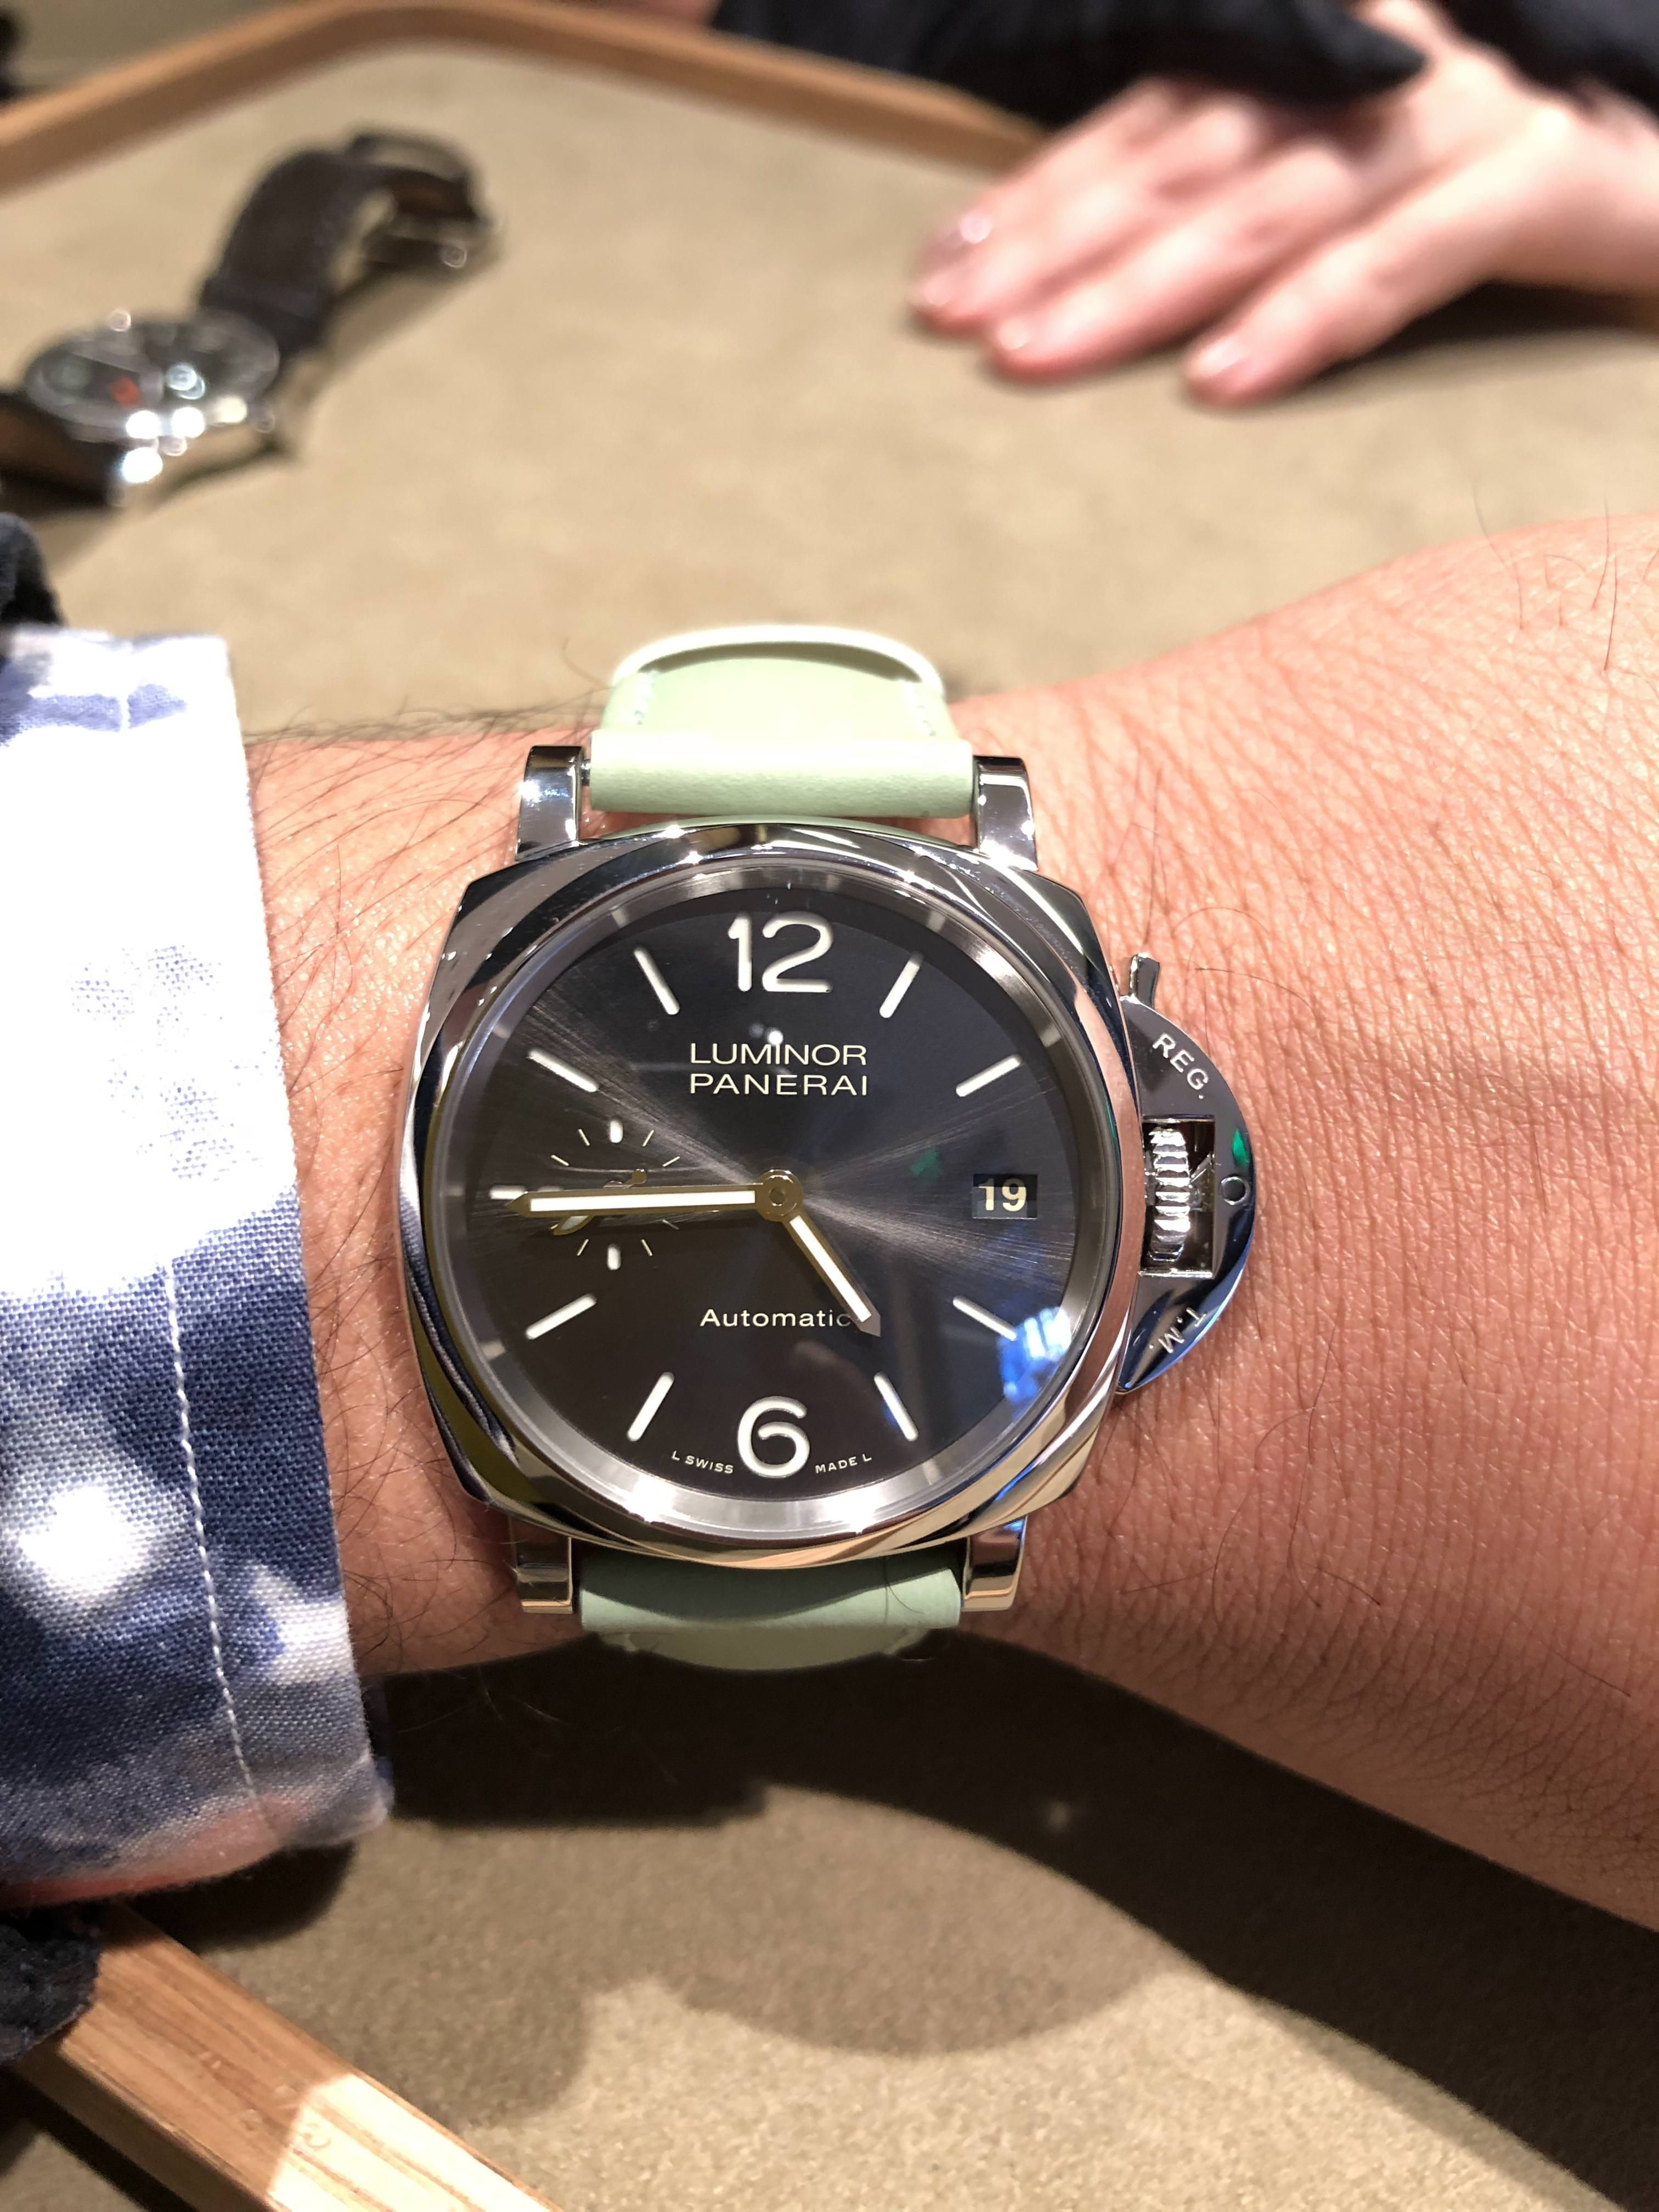 Panerai 38mm Luminor A Panerai For Smaller Wrists Watches In